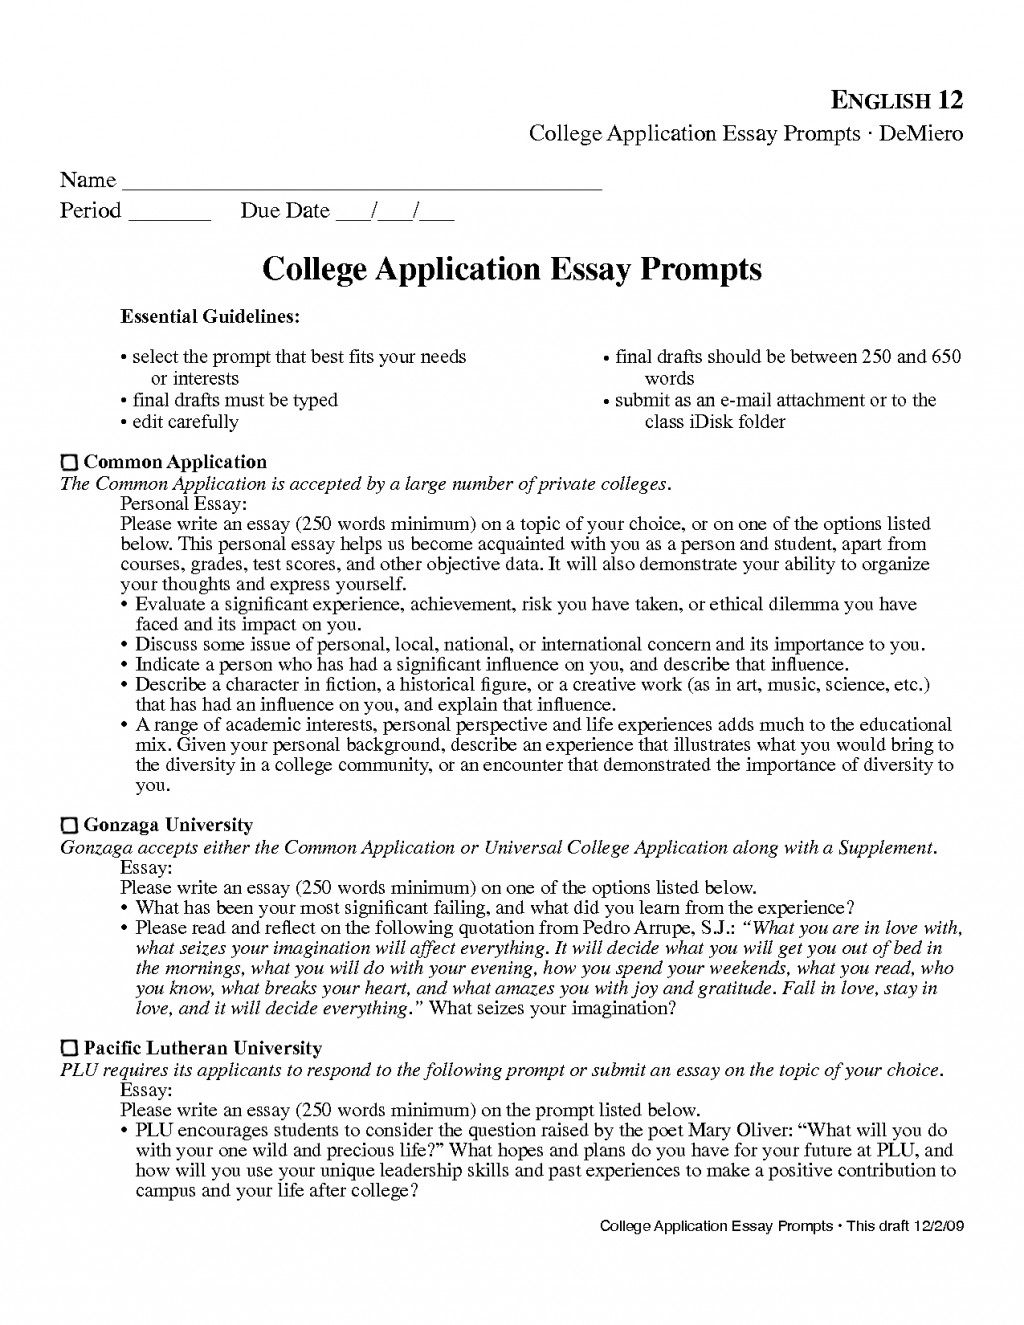 003 Essay Example Common App Prompt Prompts Provided By Application College Confidential Physic Minimalistics Co Inside Format Unusual Examples 4 Word Limit Large